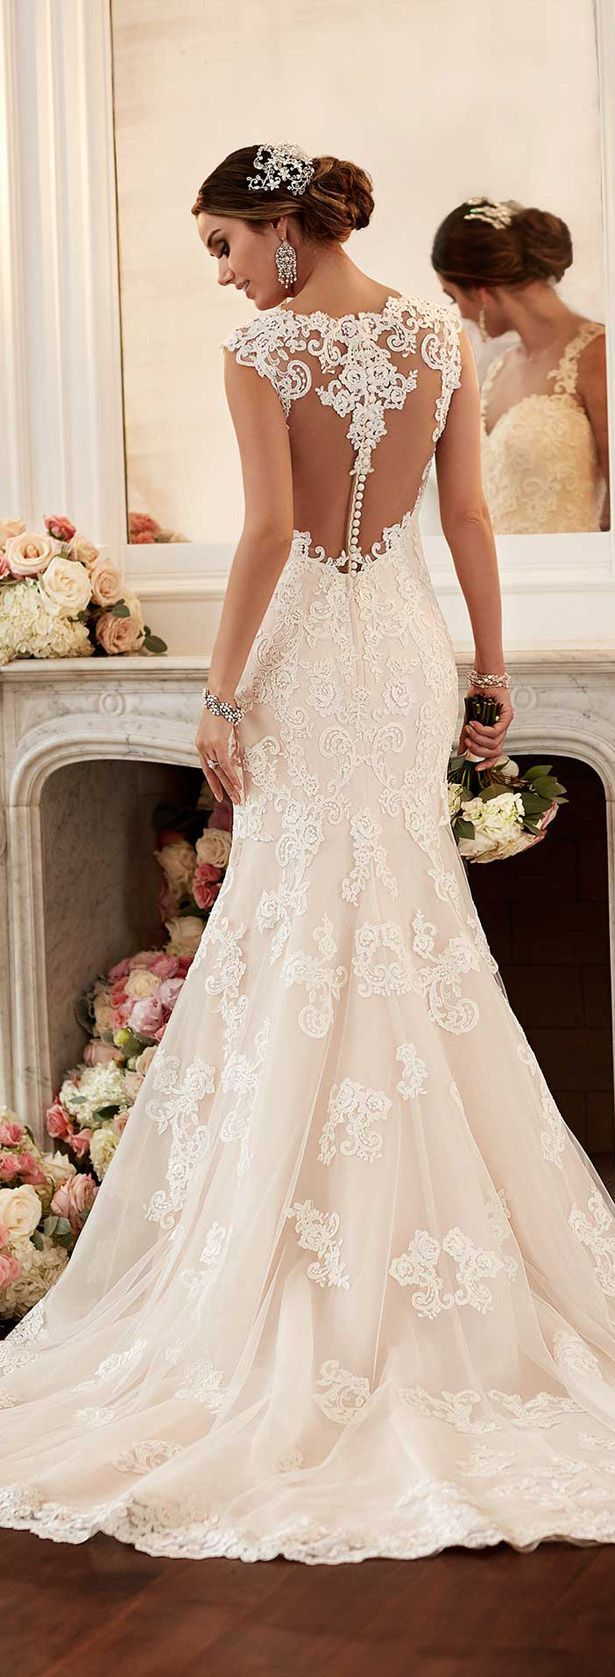 db4dba70b09aadb17b3f325e9ba43a73--lace-back-wedding-dress--wedding-dresses